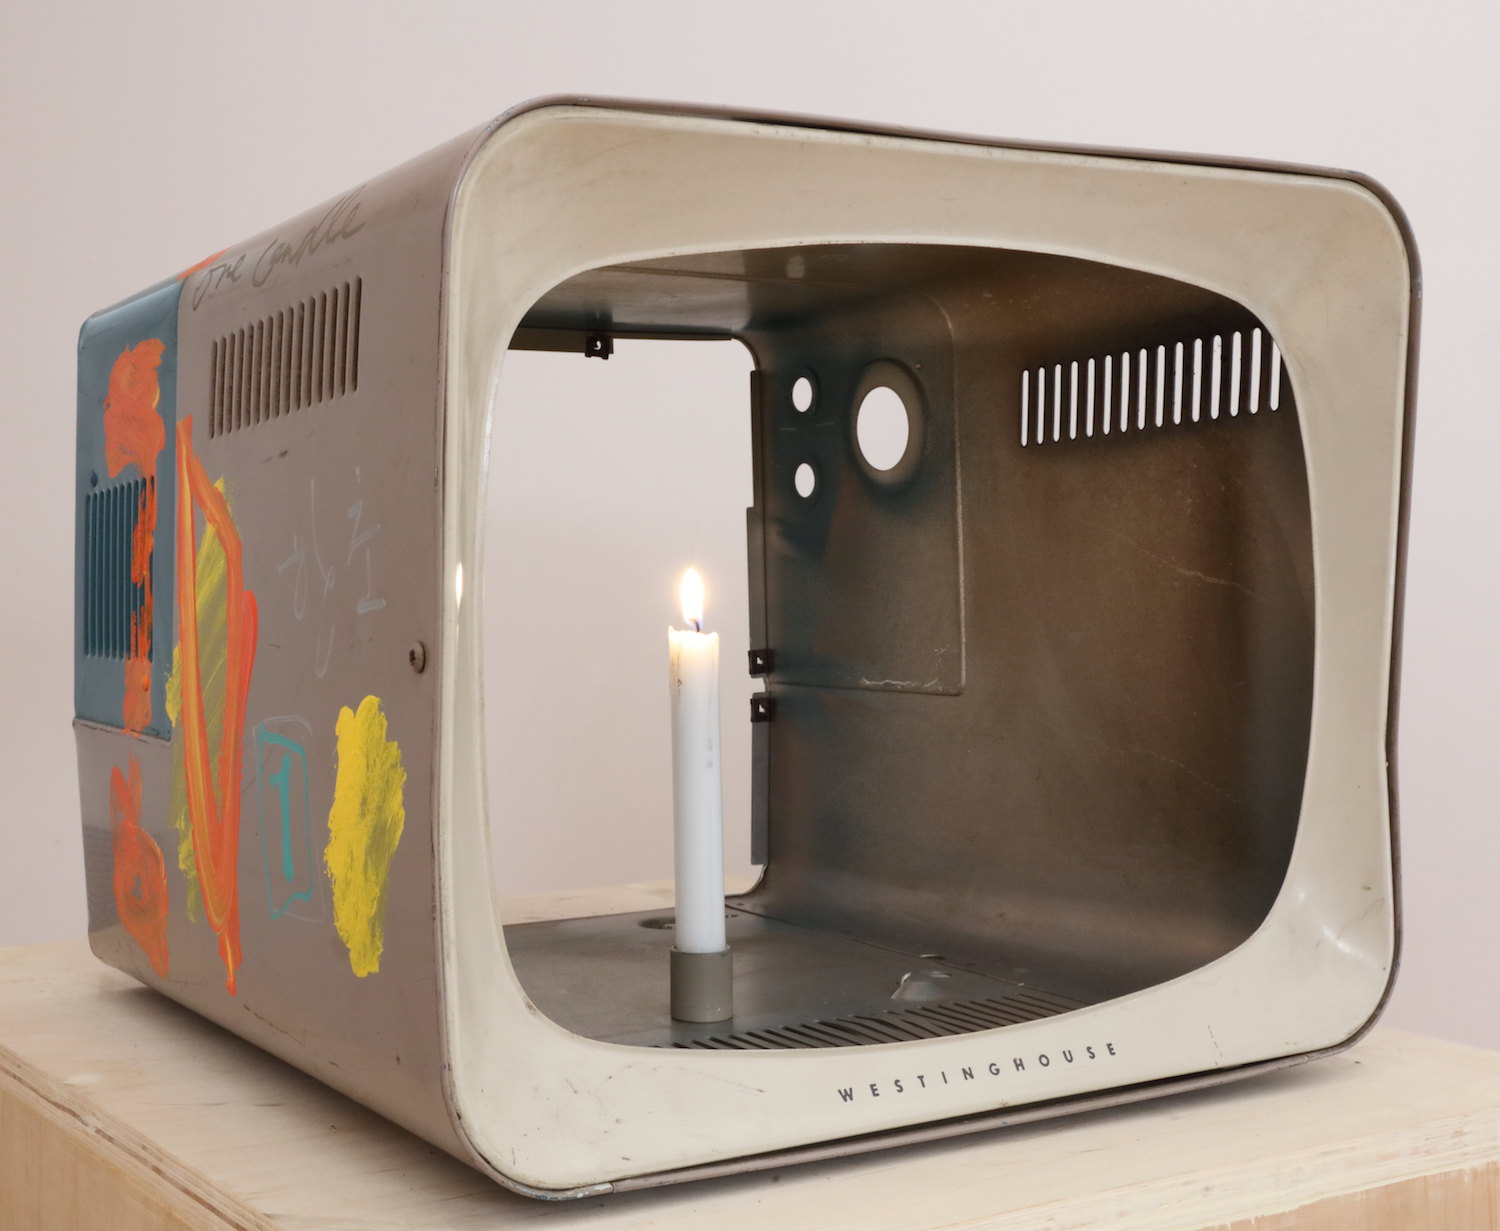 Nam June Paik, 'One Candle', 1989. Image courtesy of León Gallery International.